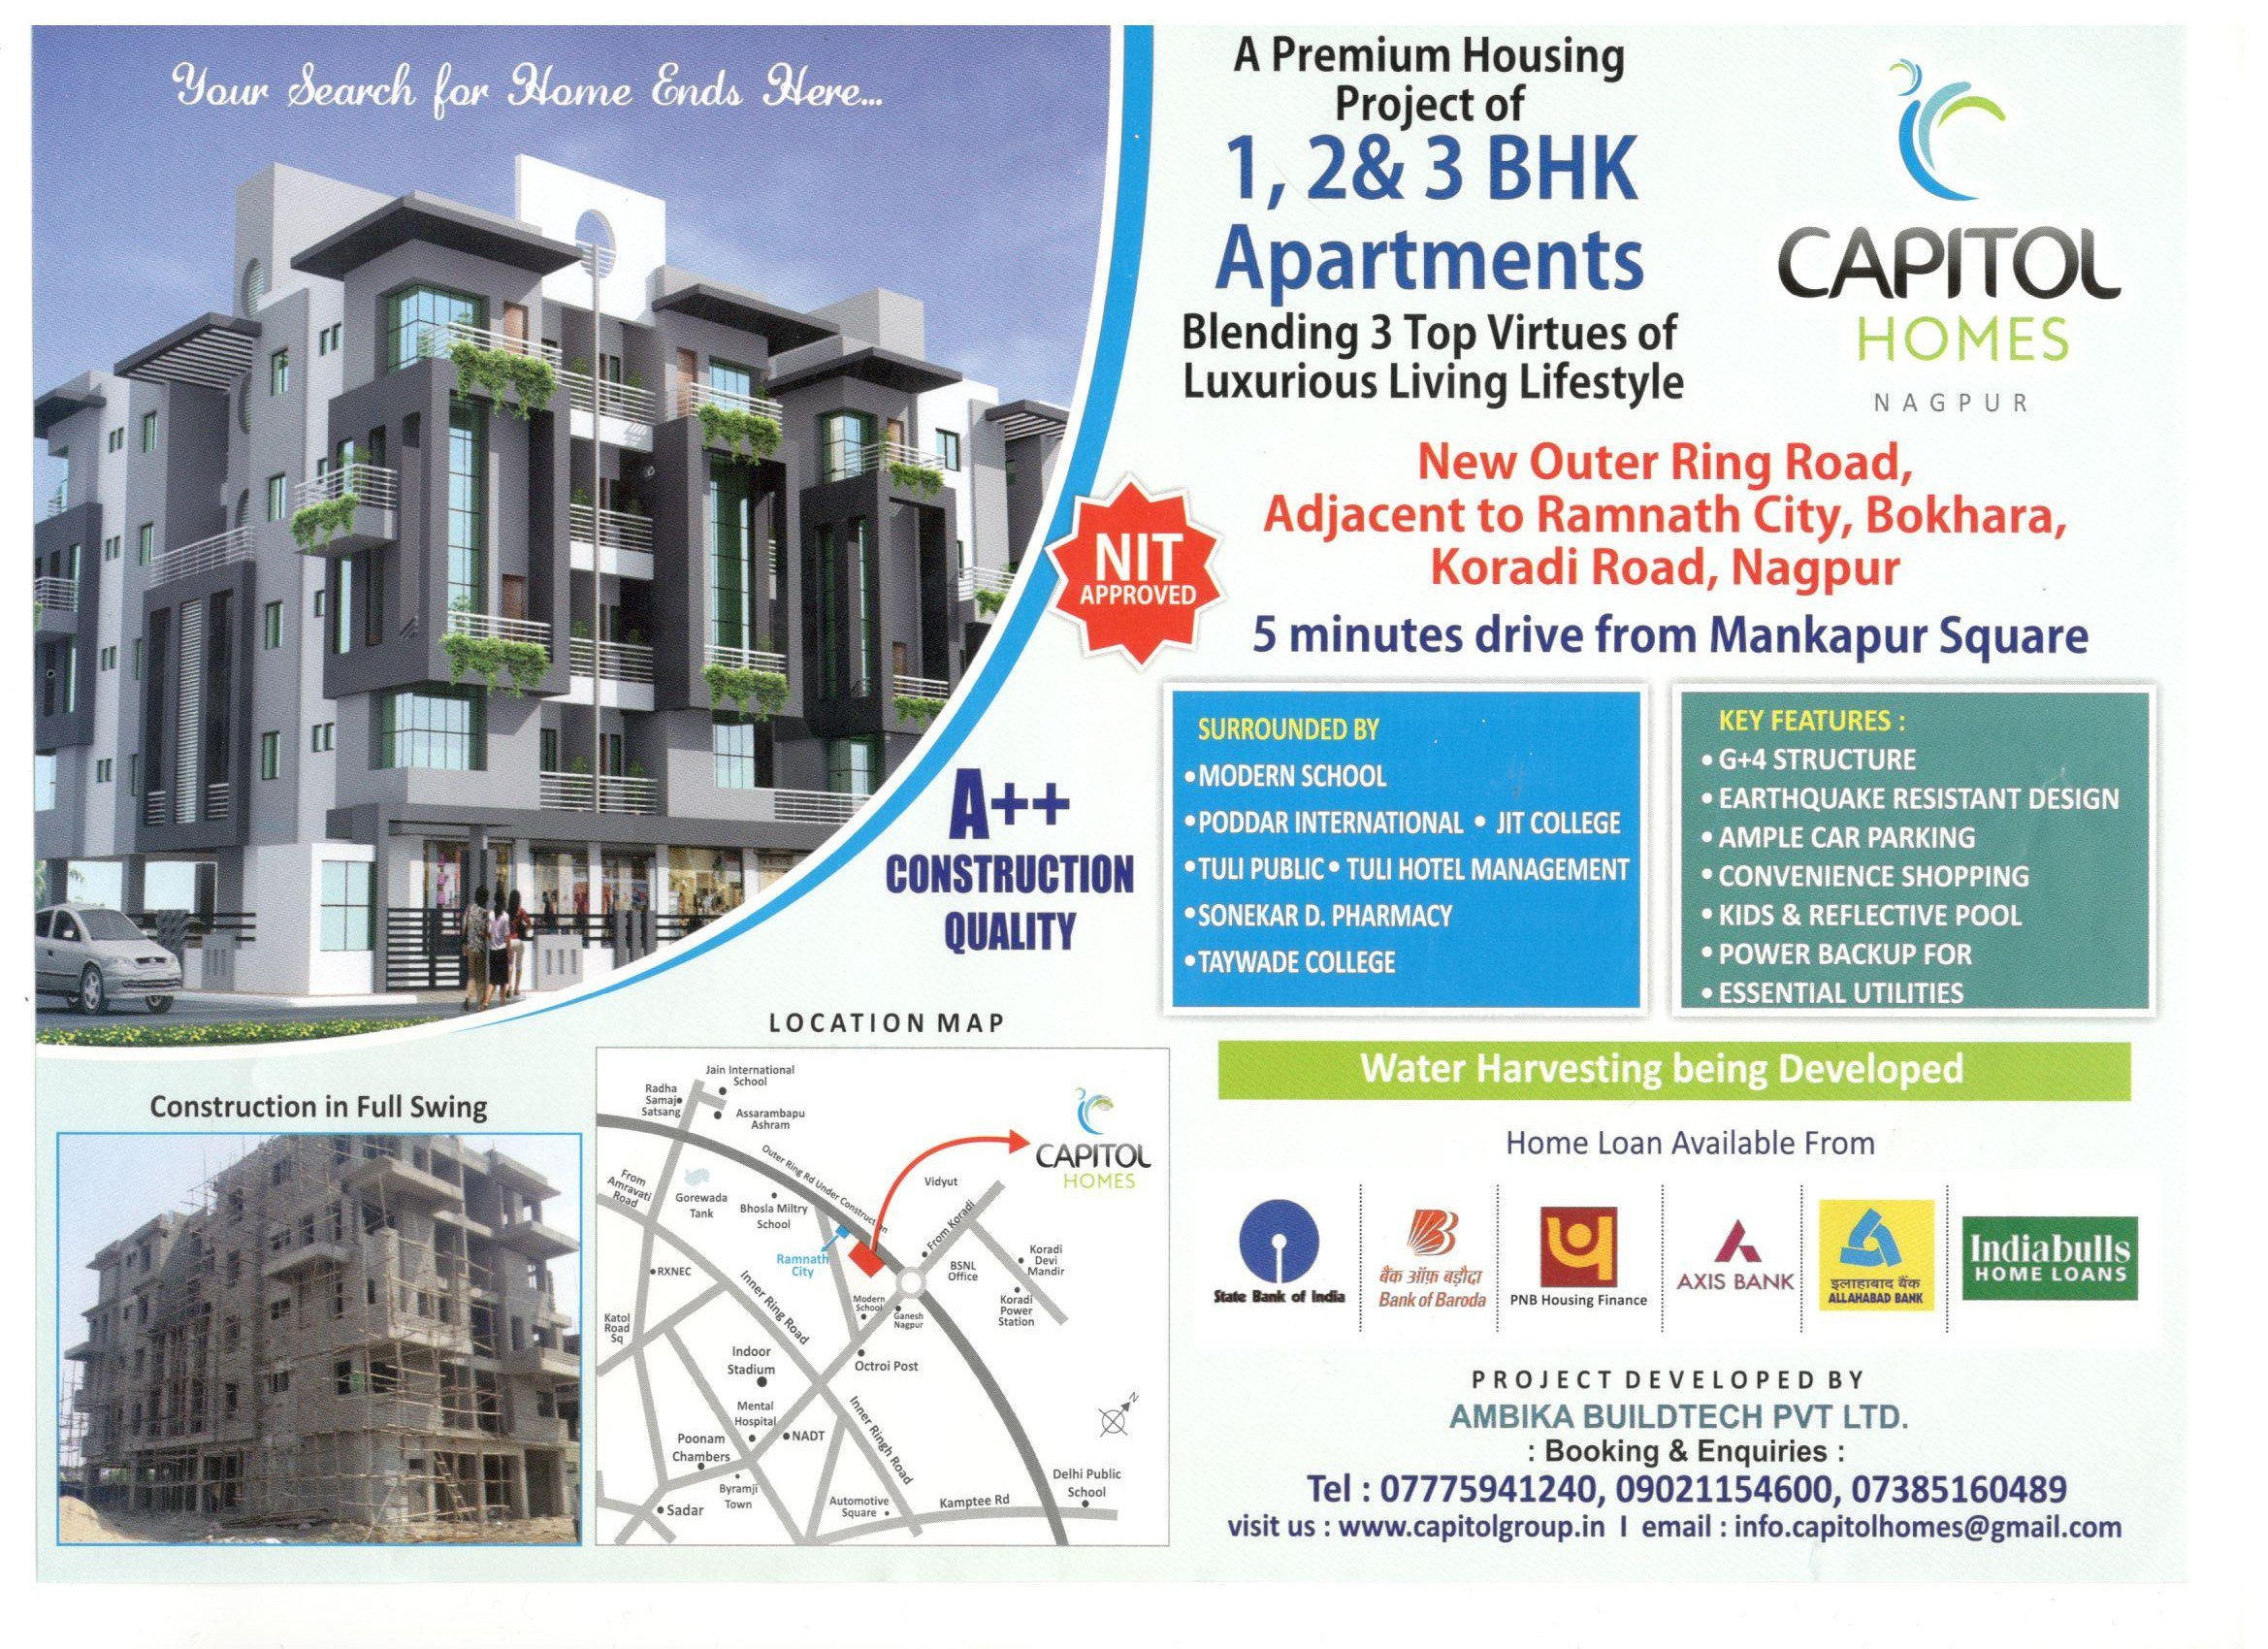 Capitol Homes Nagpur